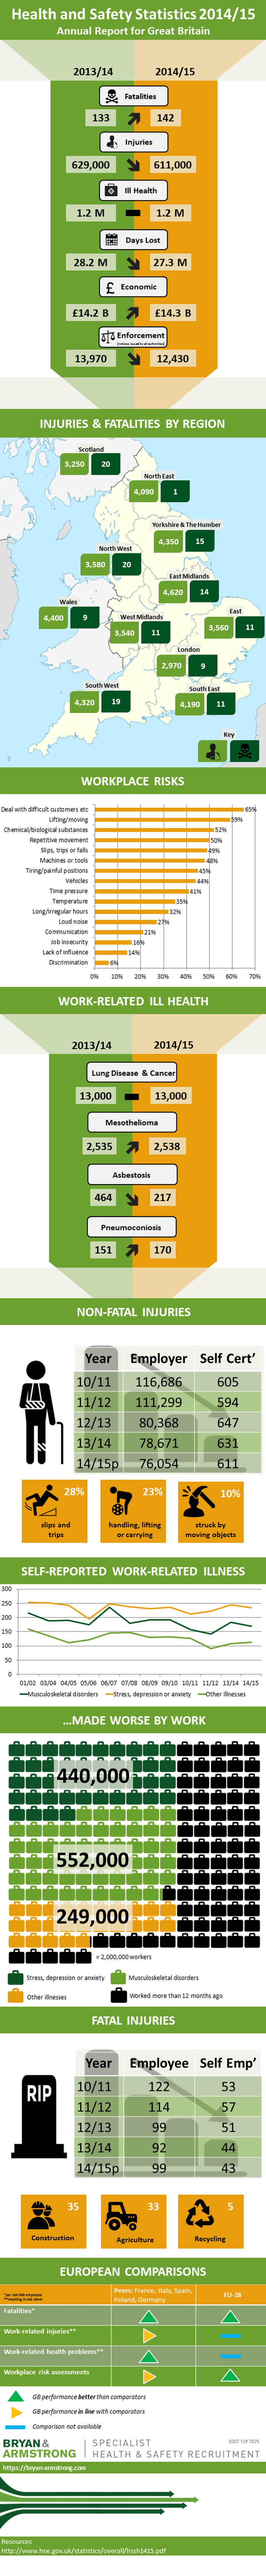 hse-annual-health-and-safety-stats-2014-15